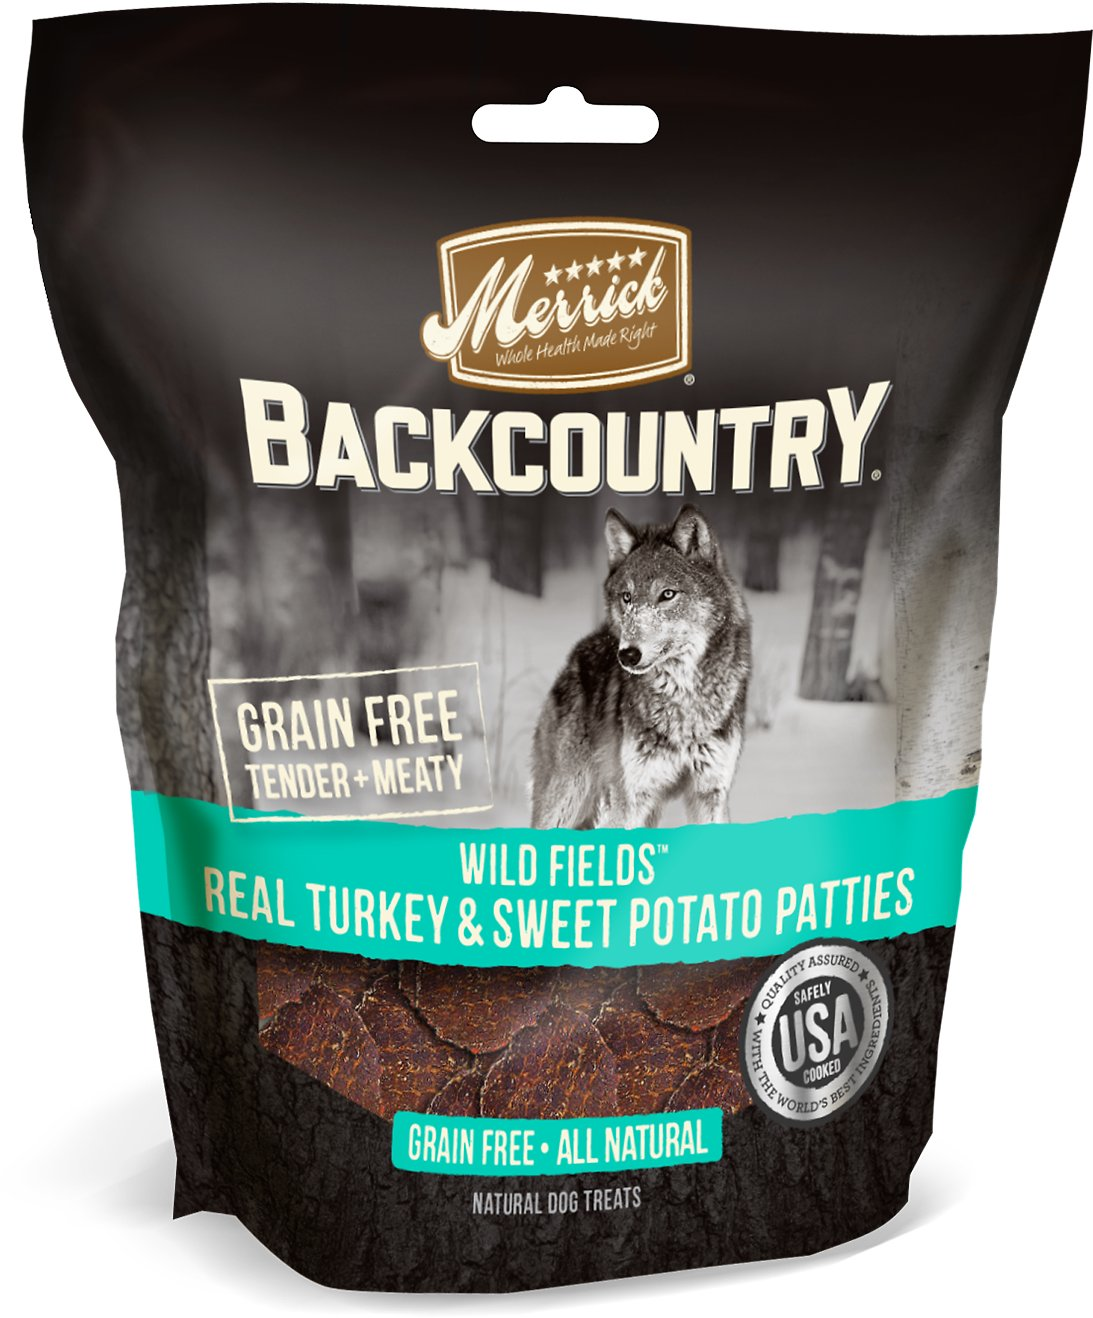 Merrick Backcountry Wild Fields Real Turkey & Sweet Potato Patties Dog Treats, 4-oz bag